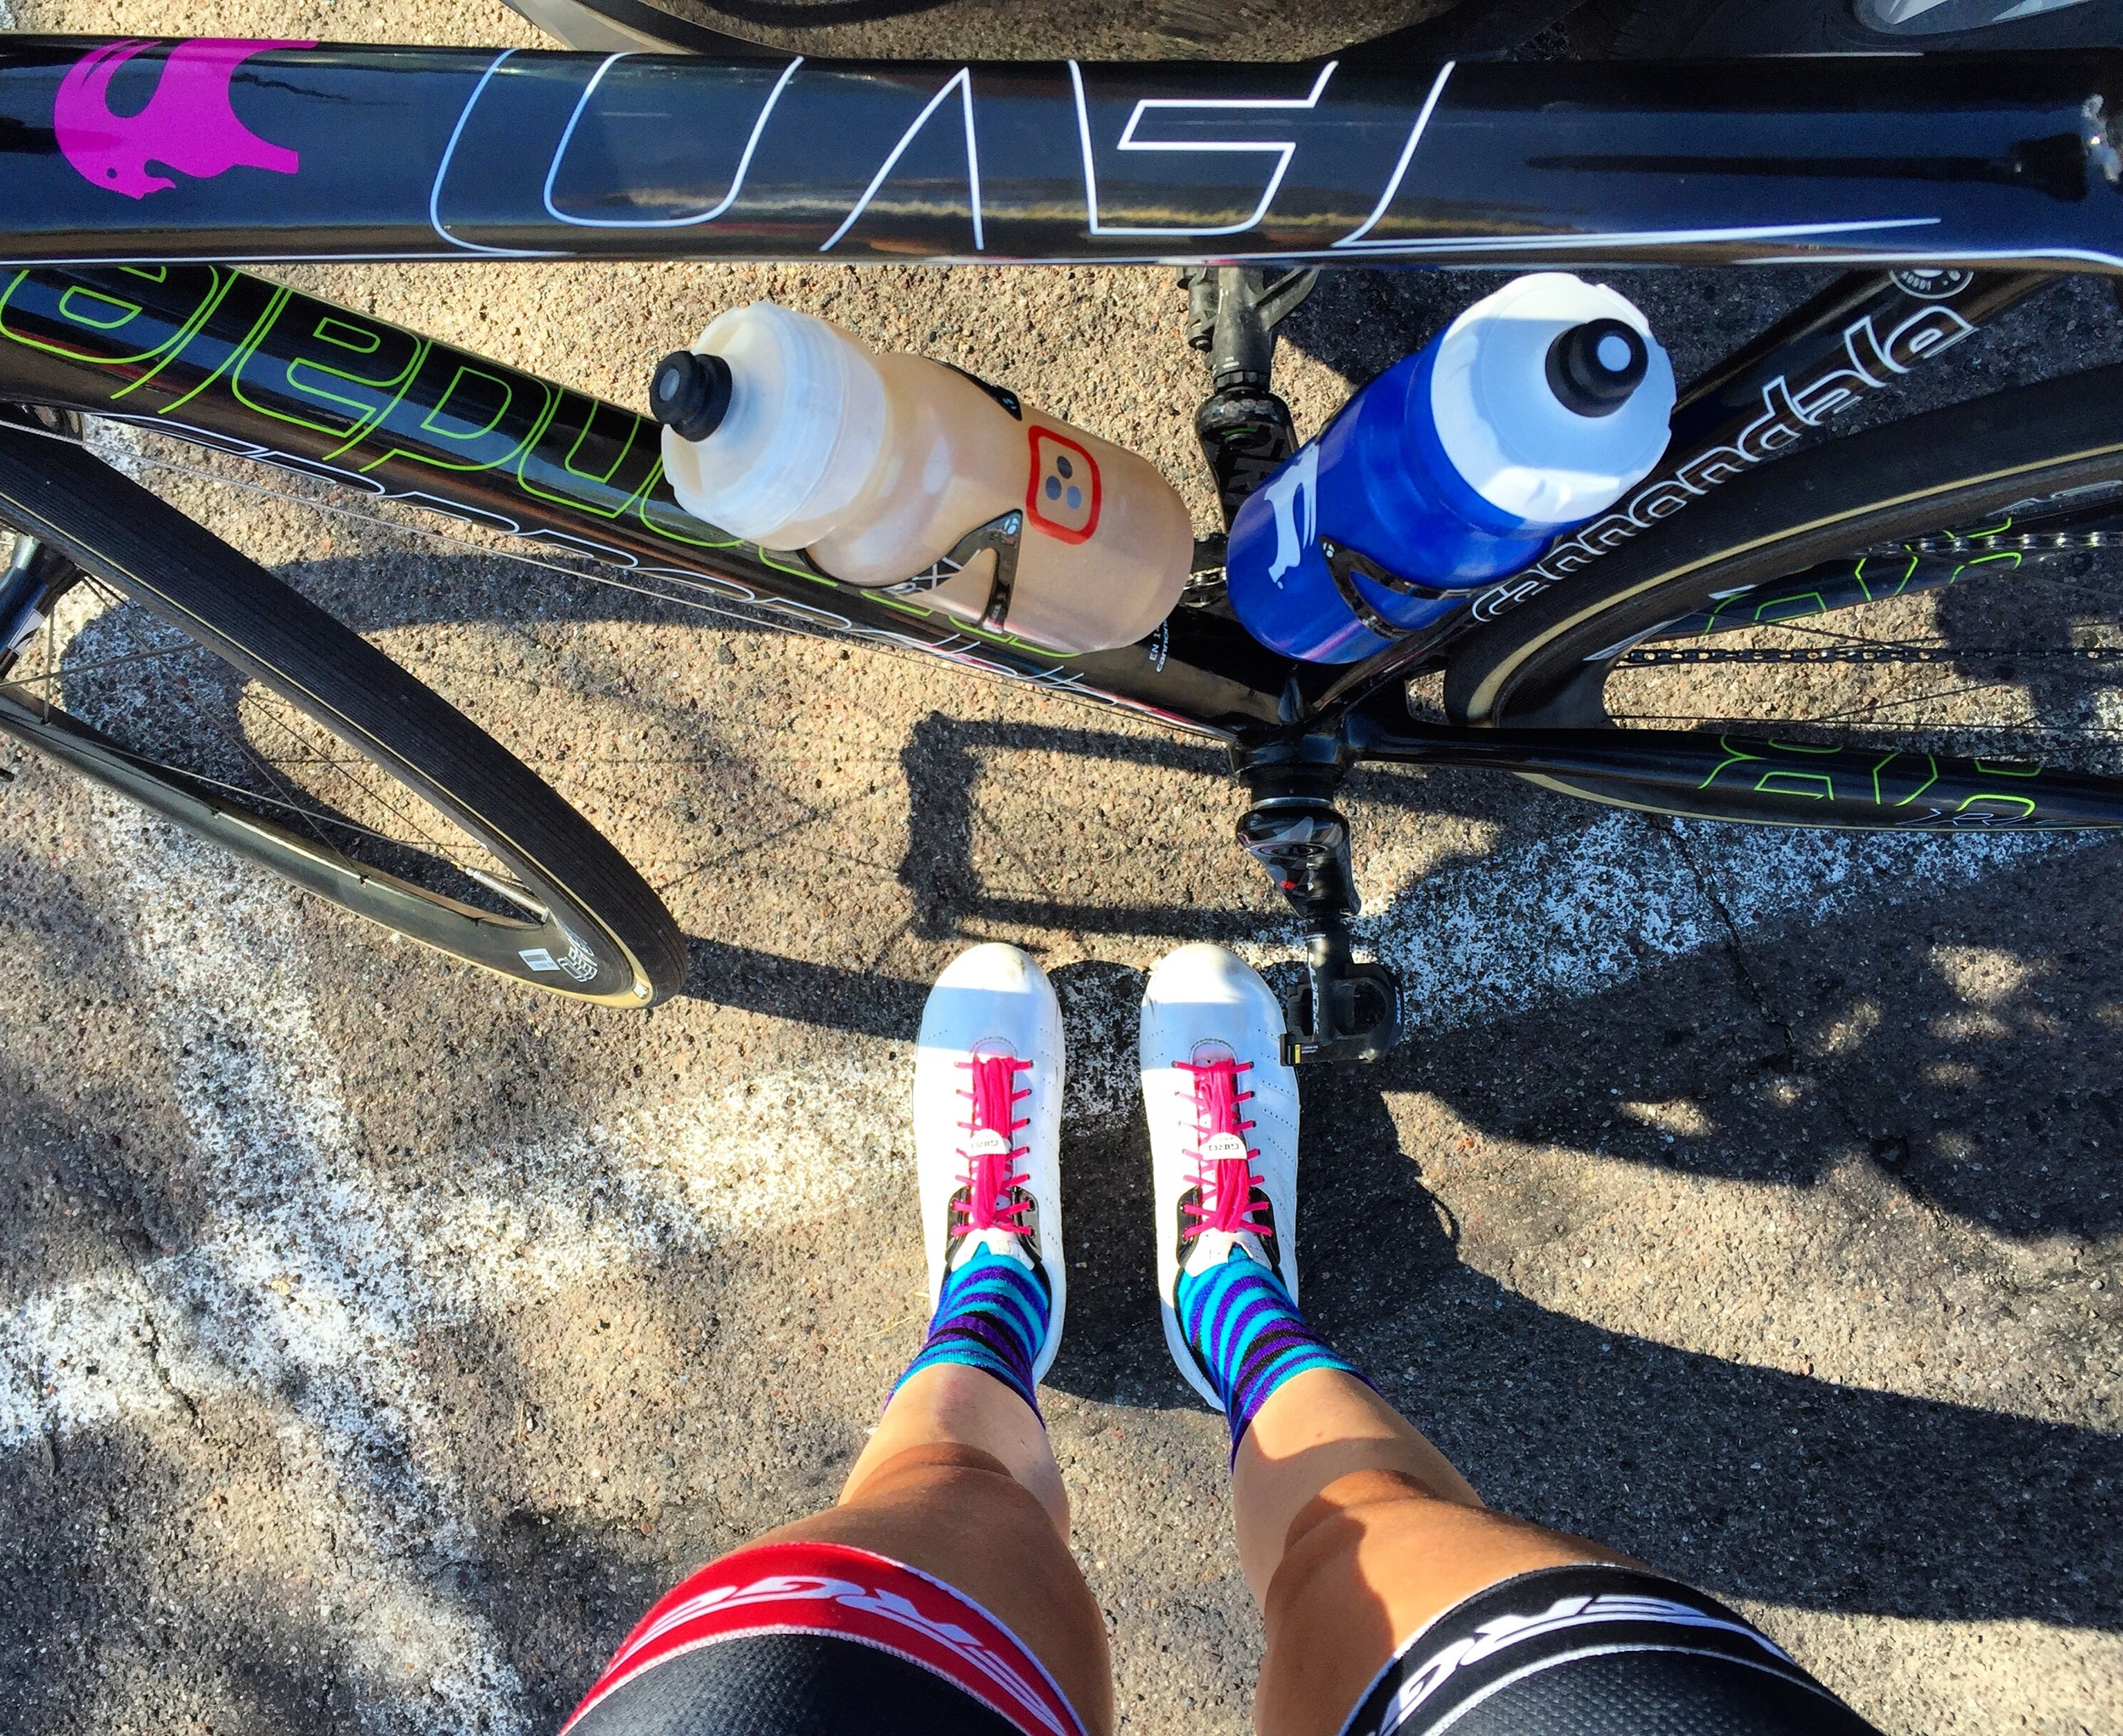 Hydration, party socks, and goat power. Important elements to a successful race.